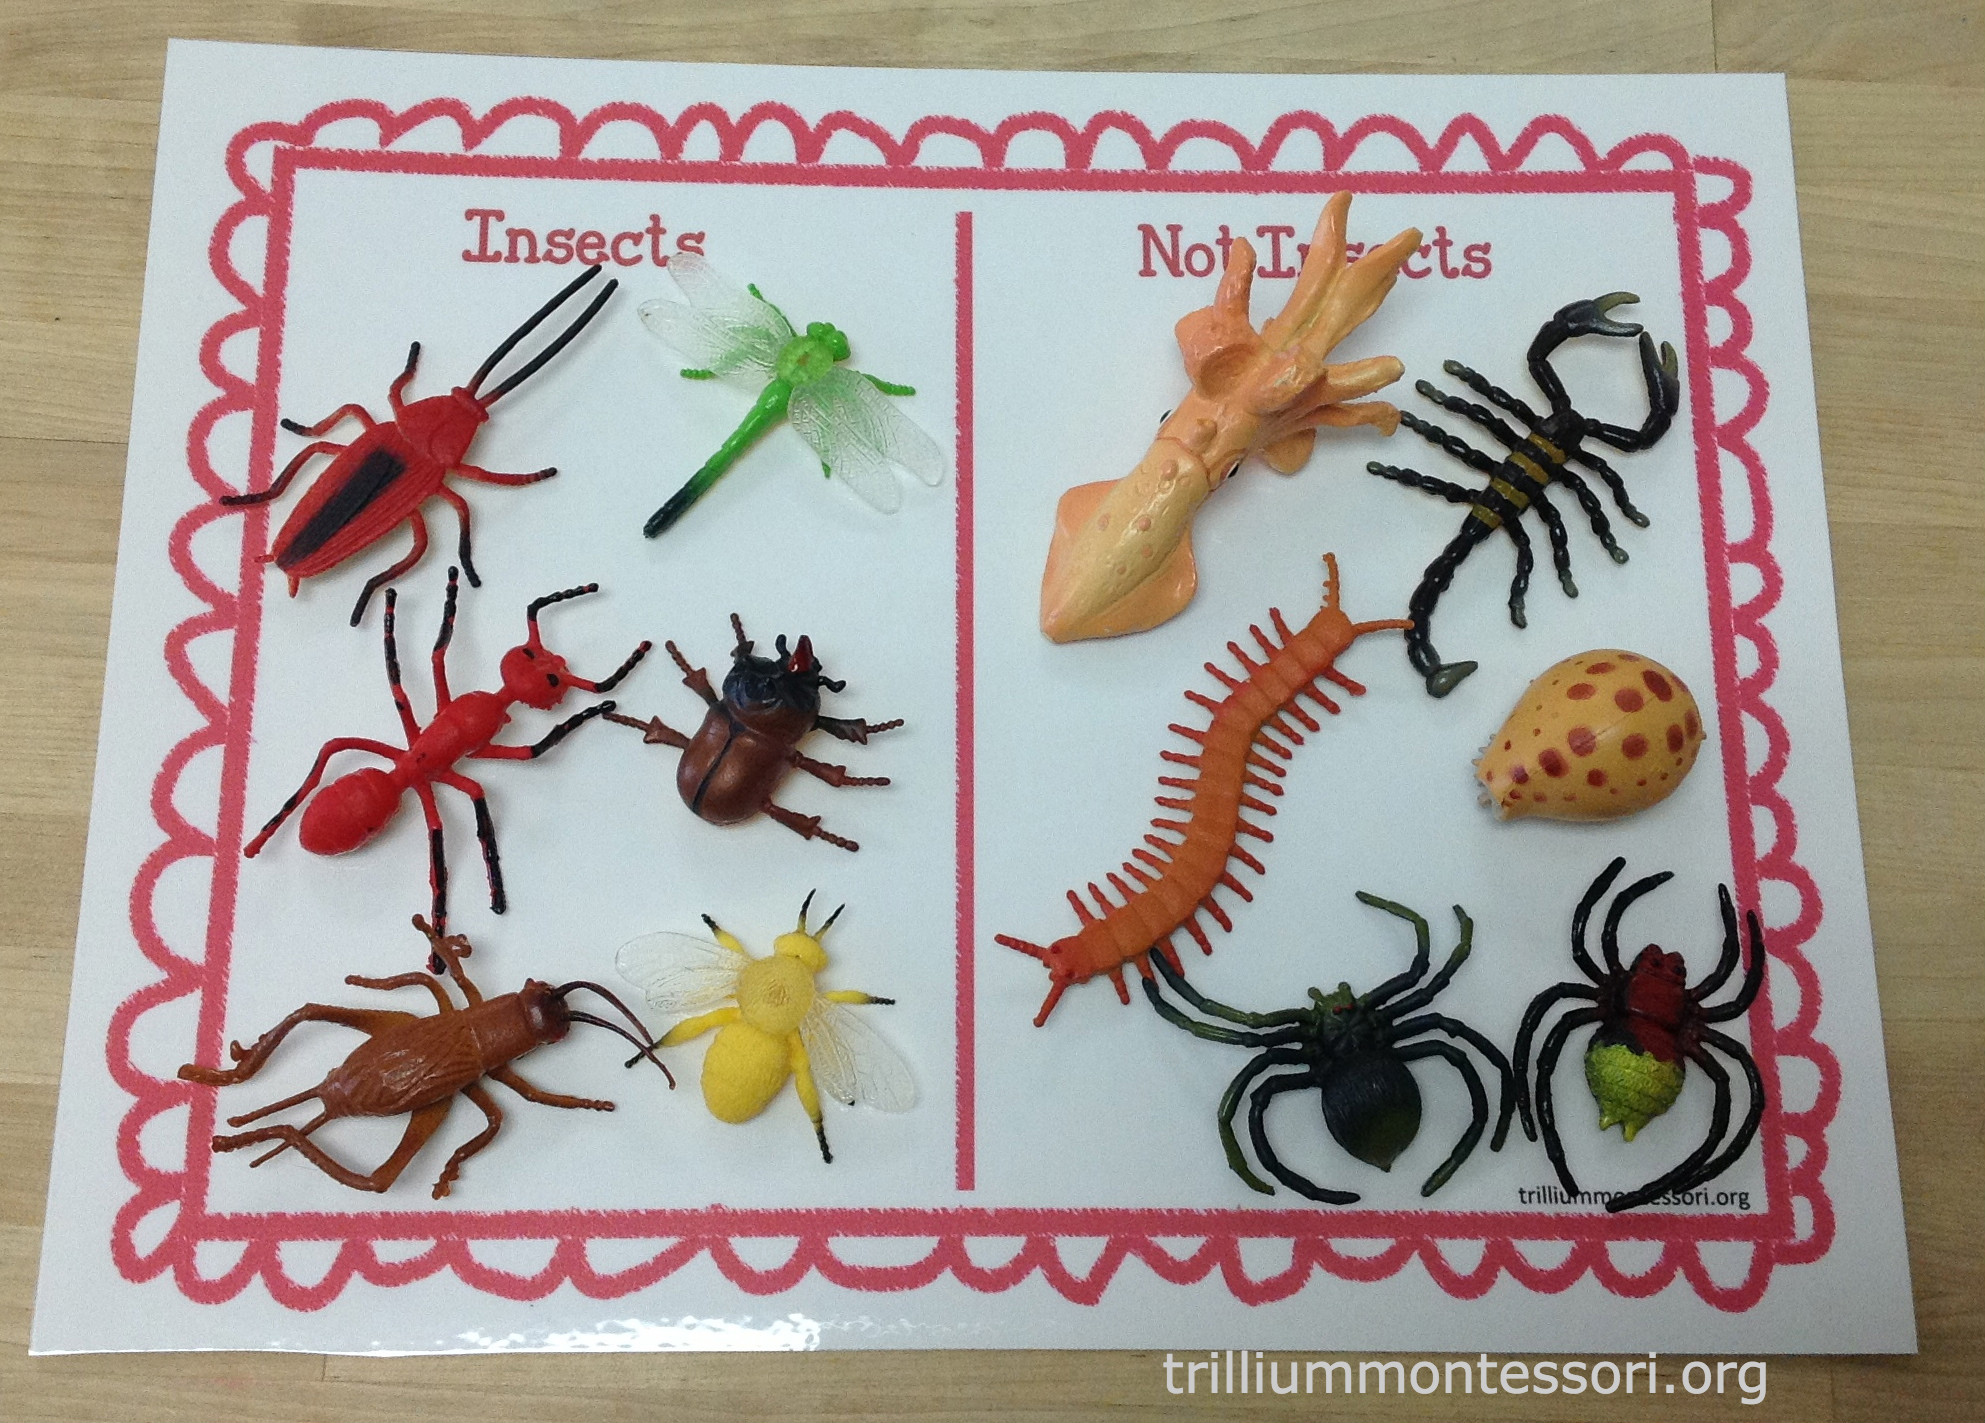 Learning About Bugs - Montessori Inspiration at Home